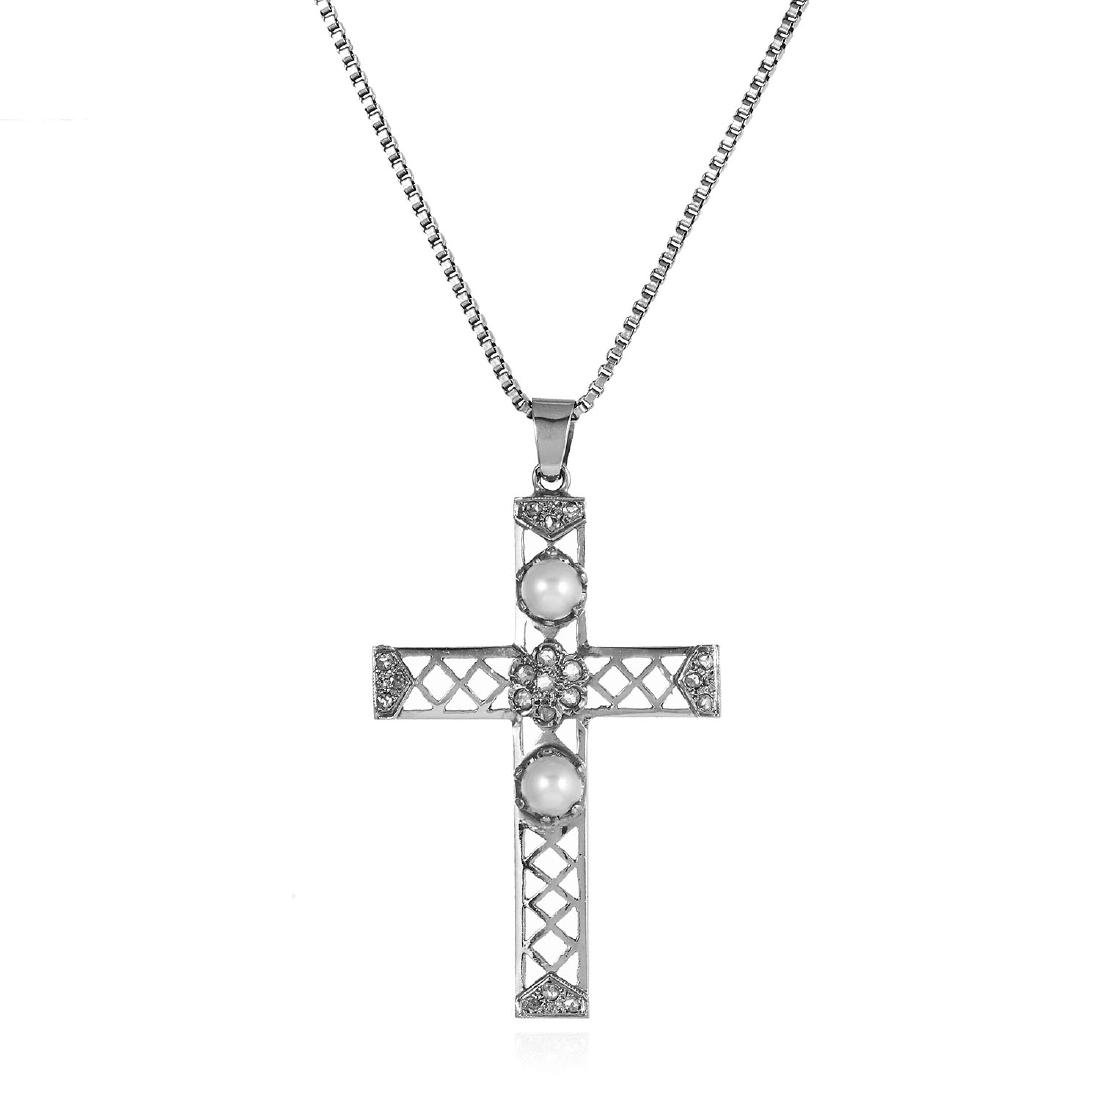 A DIAMOND AND PEARL CROSS PENDANT in white gold or